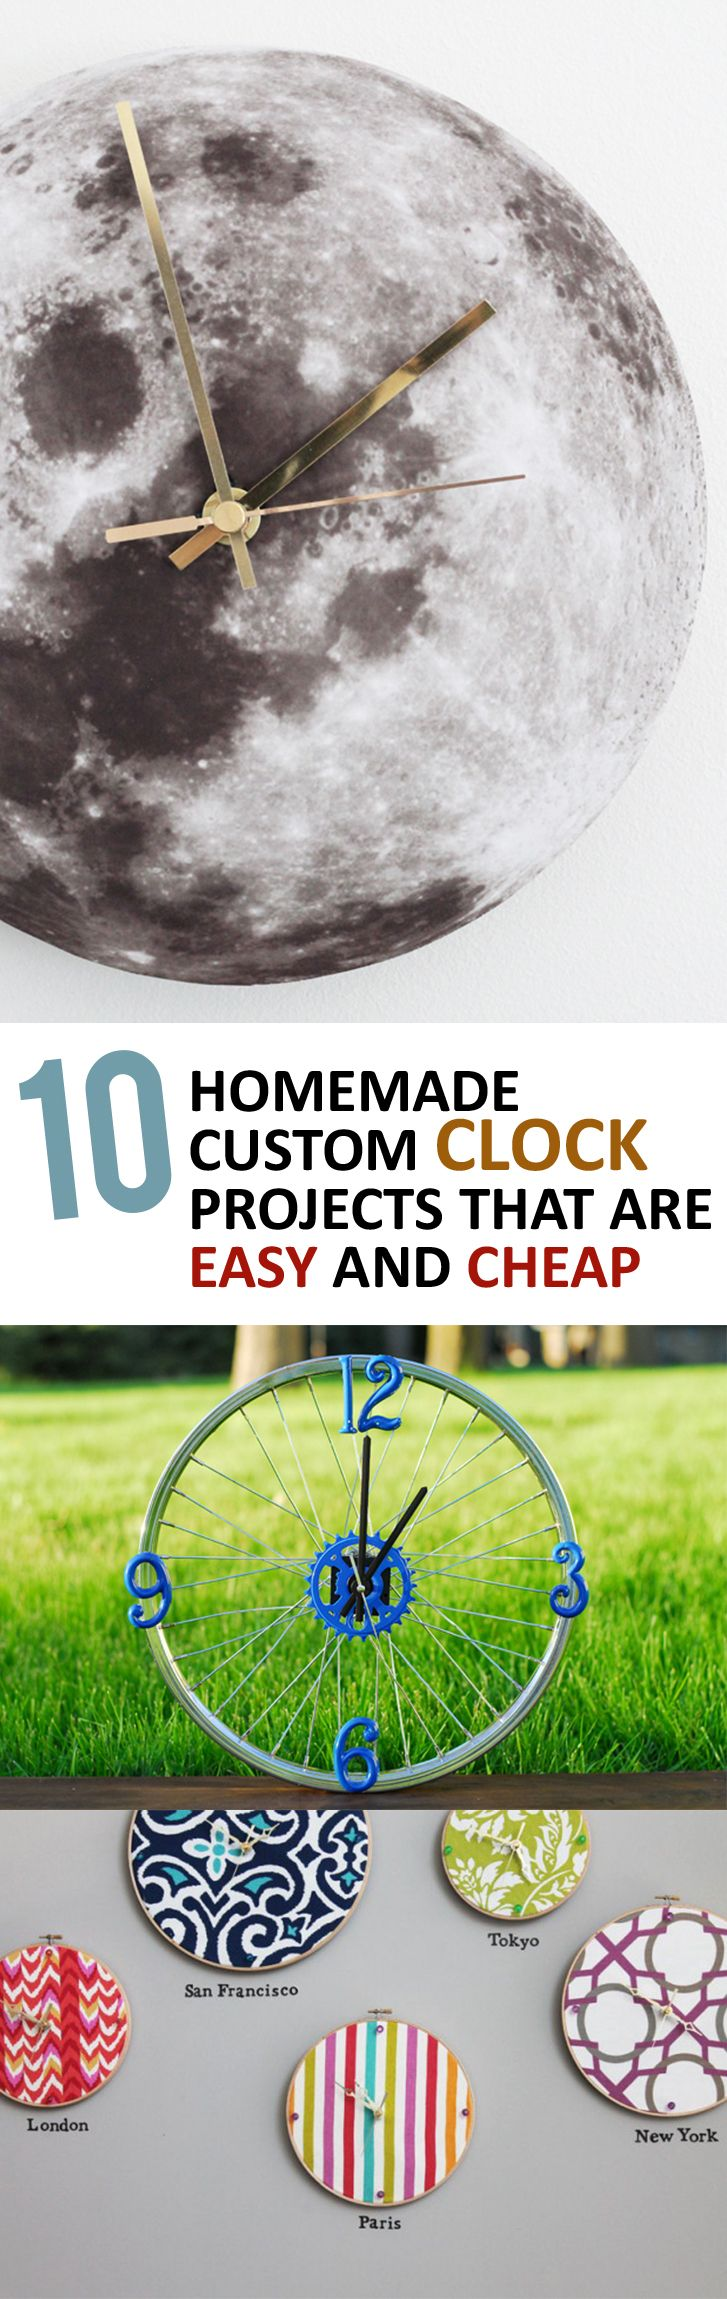 10 Homemade Custom Clock Projects that Are Easy and Cheap